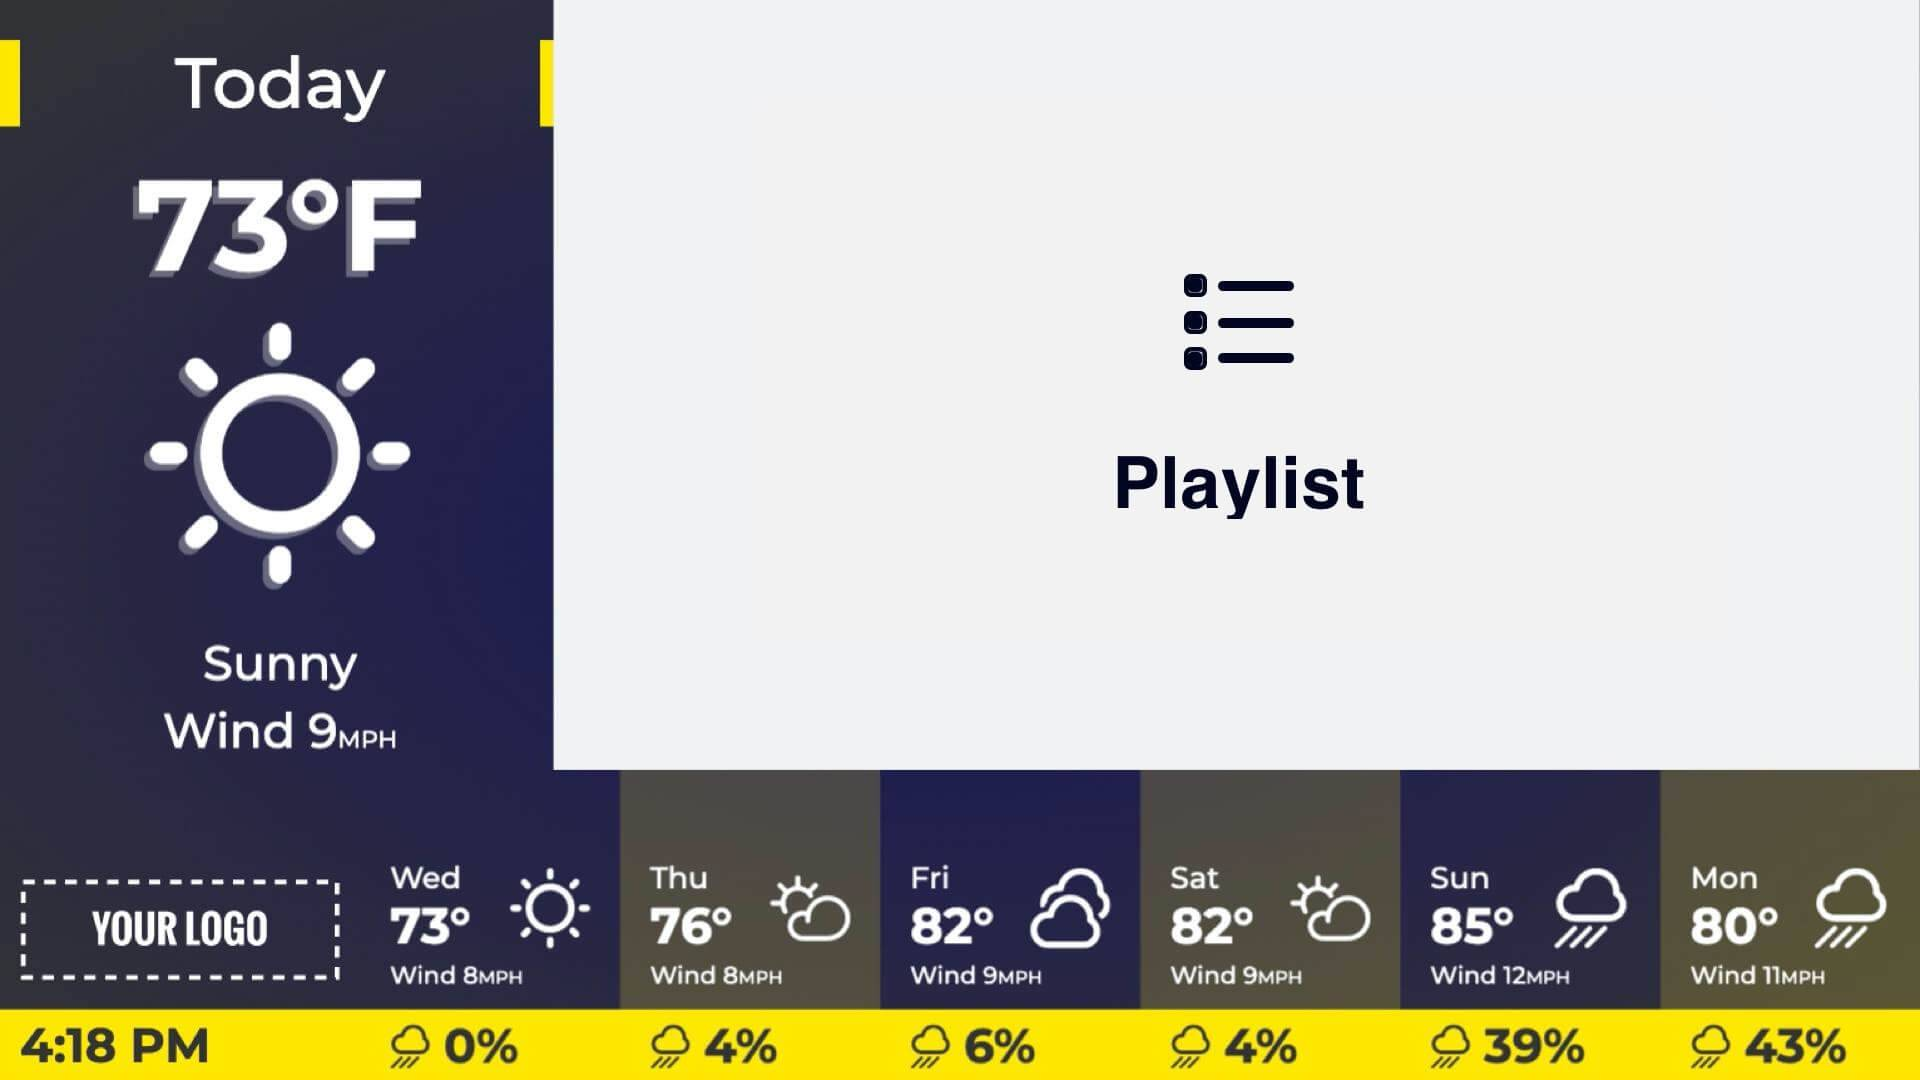 Zoned Playlist and Rain Forecast Digital Signage Template